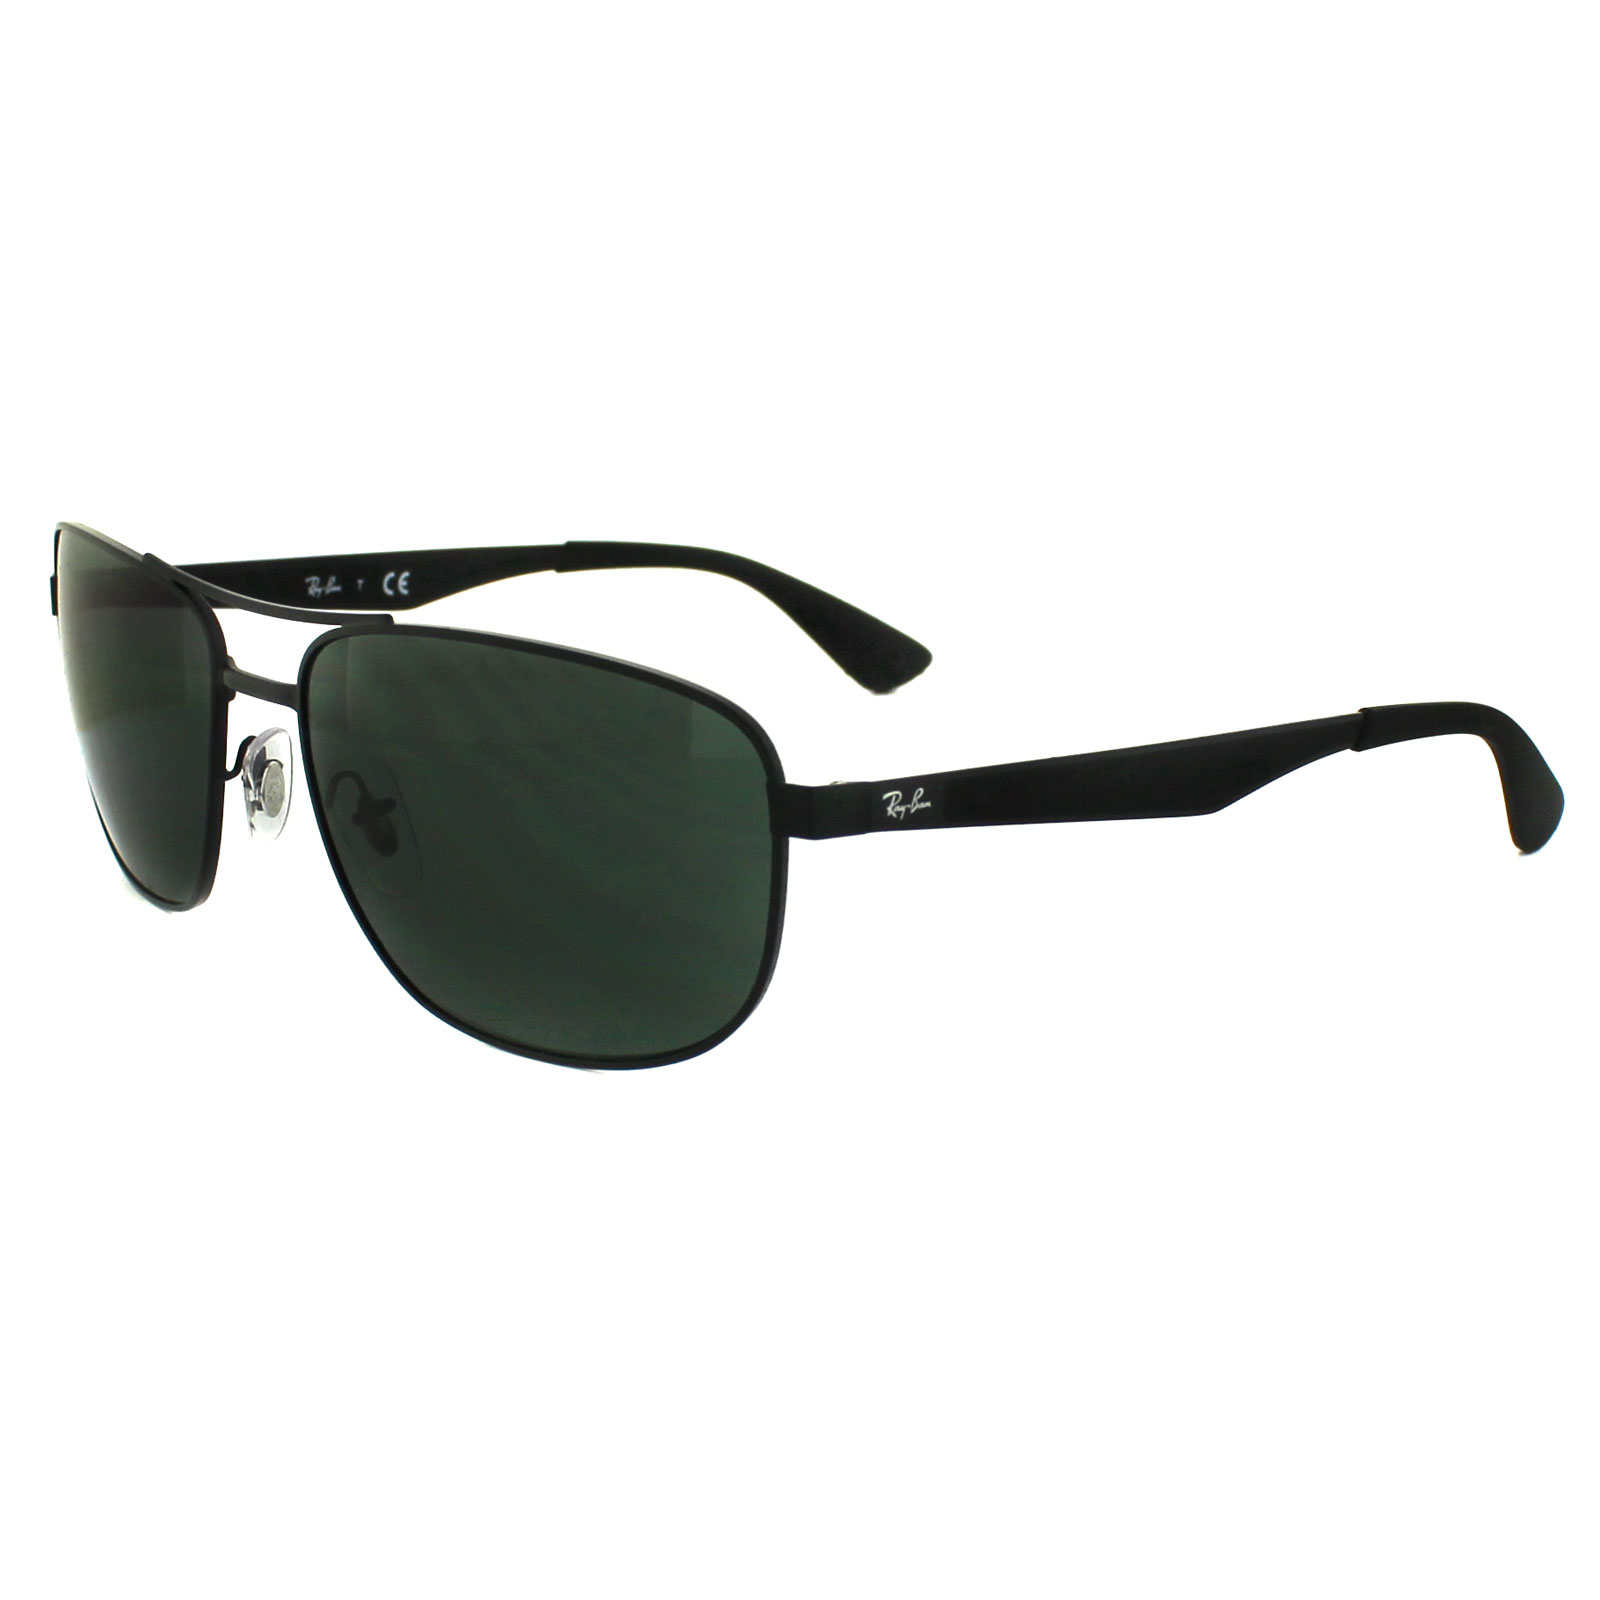 7bb6c3abe3 Cheap Ray-Ban 3528 Sunglasses - Discounted Sunglasses